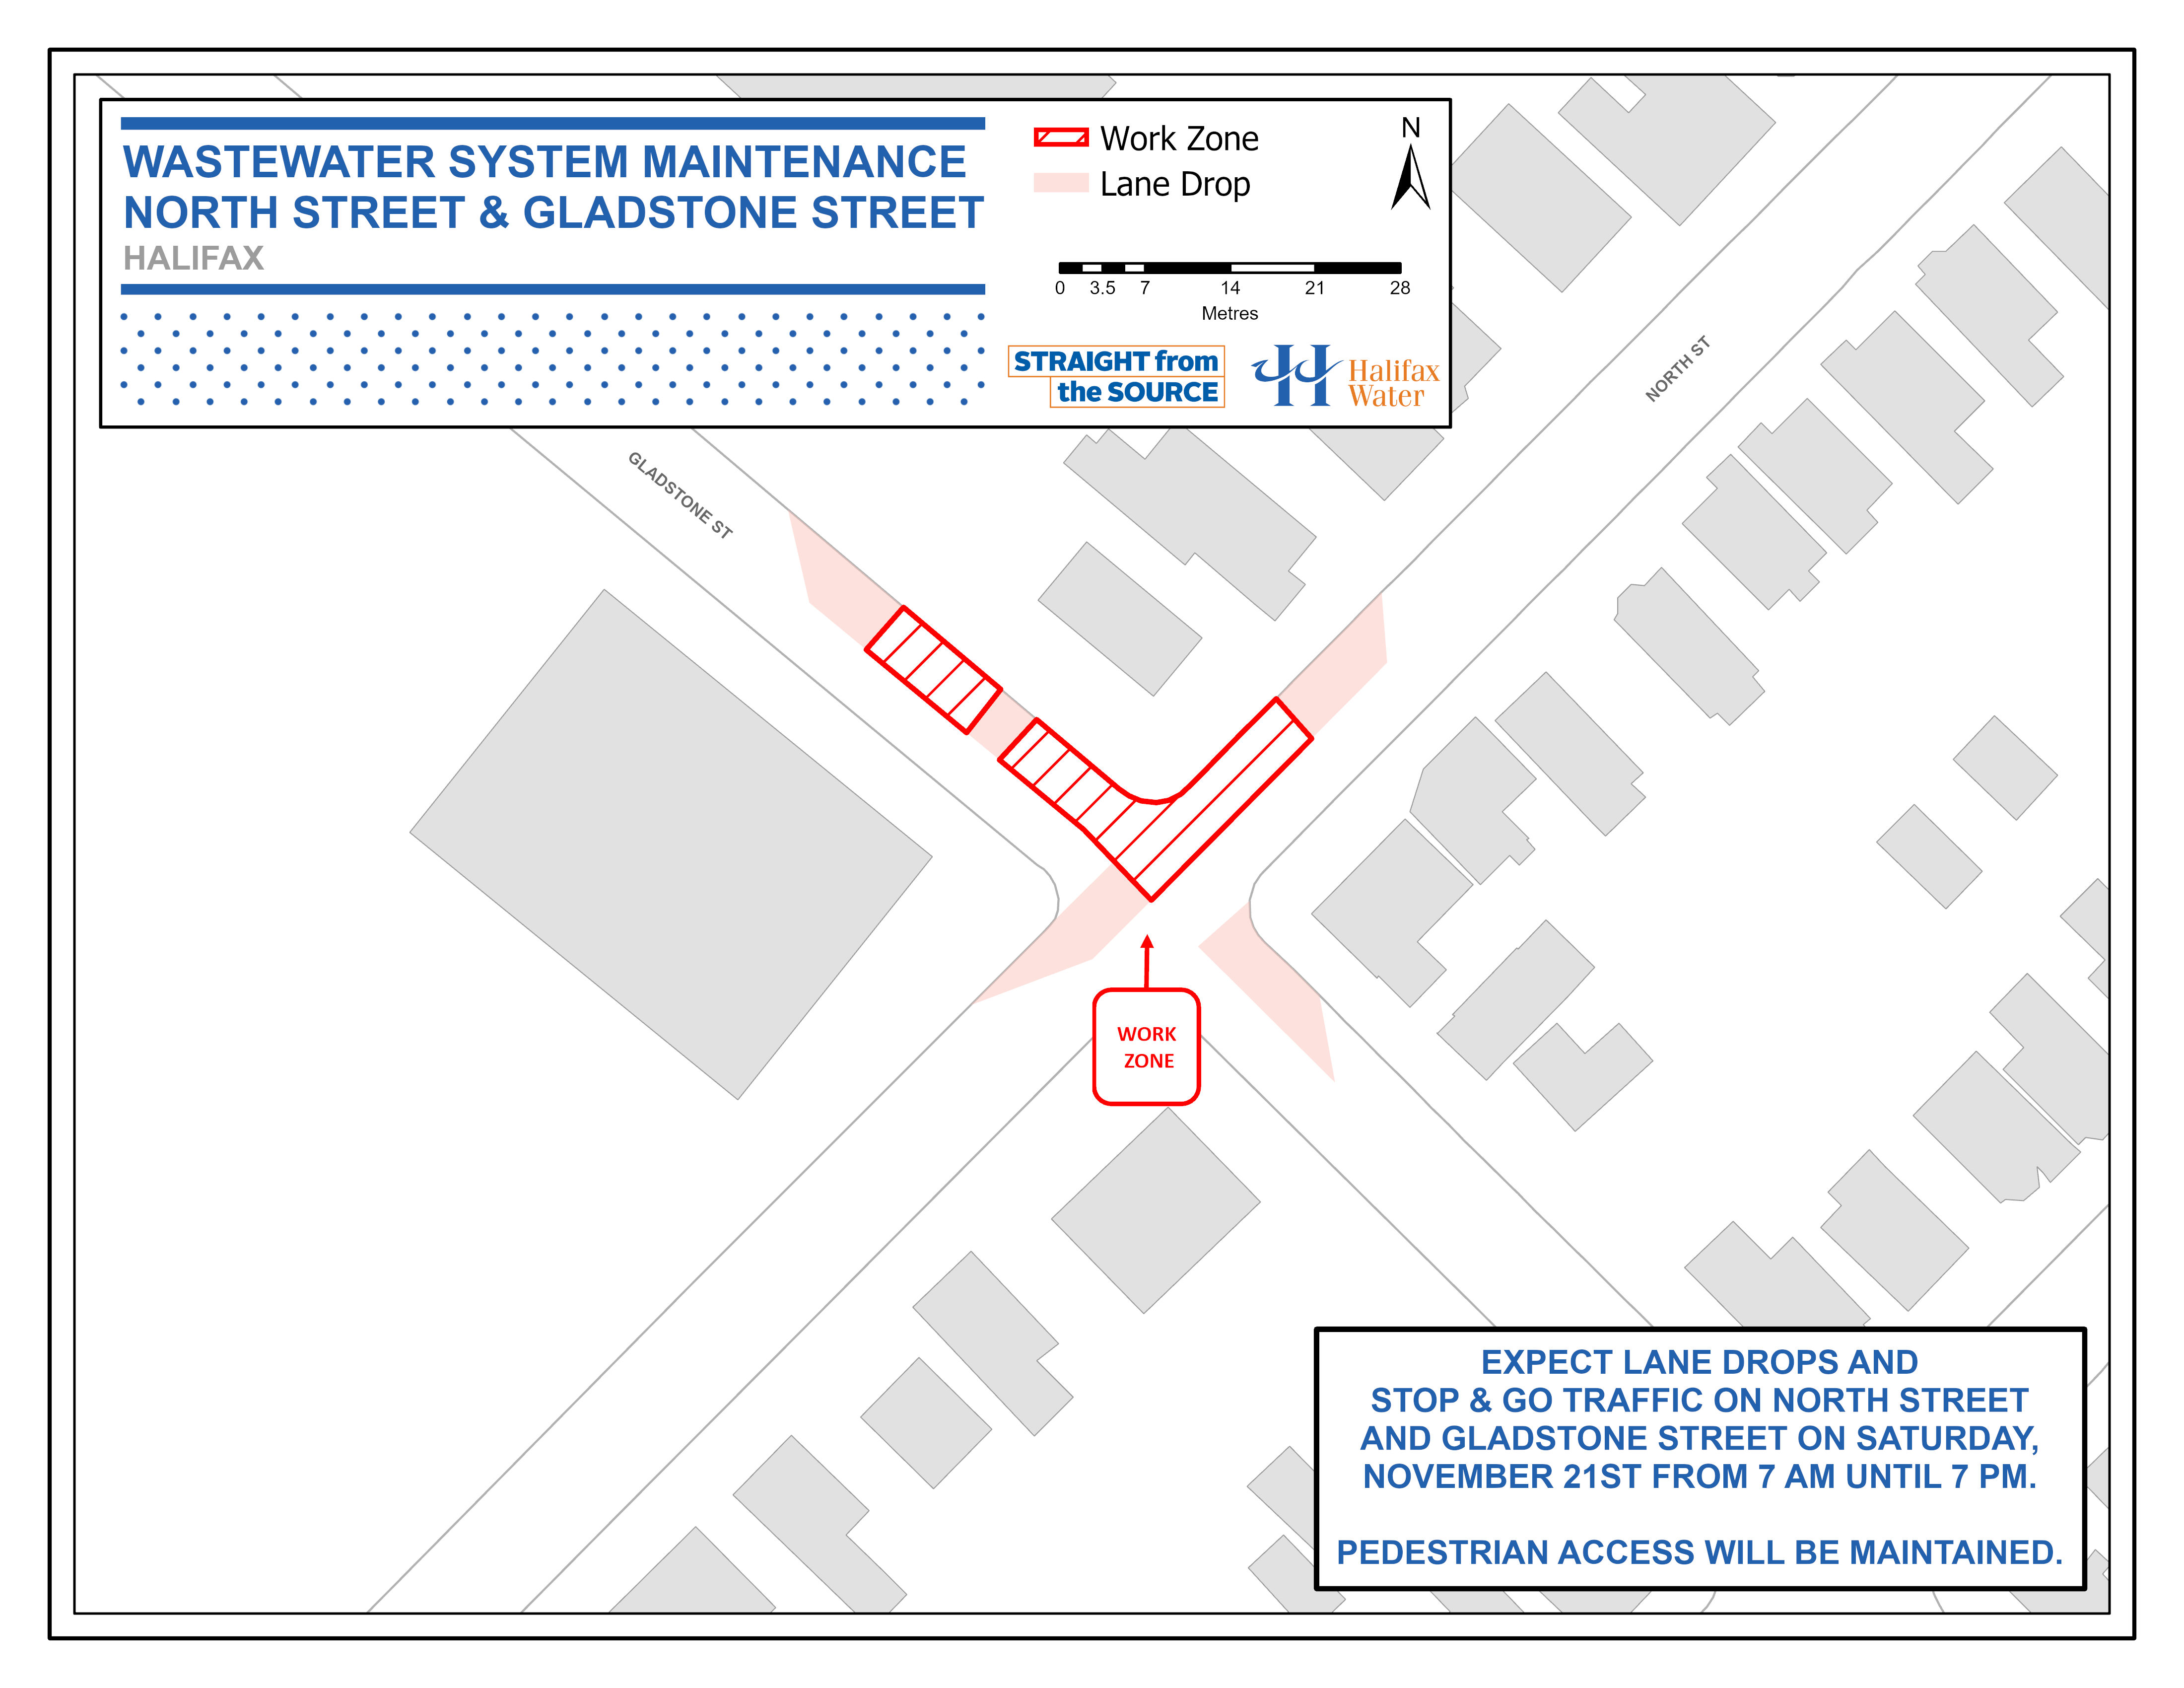 Halifax Water PSA Map - North St. and Gladstone St. - Wastewater System Maintenance